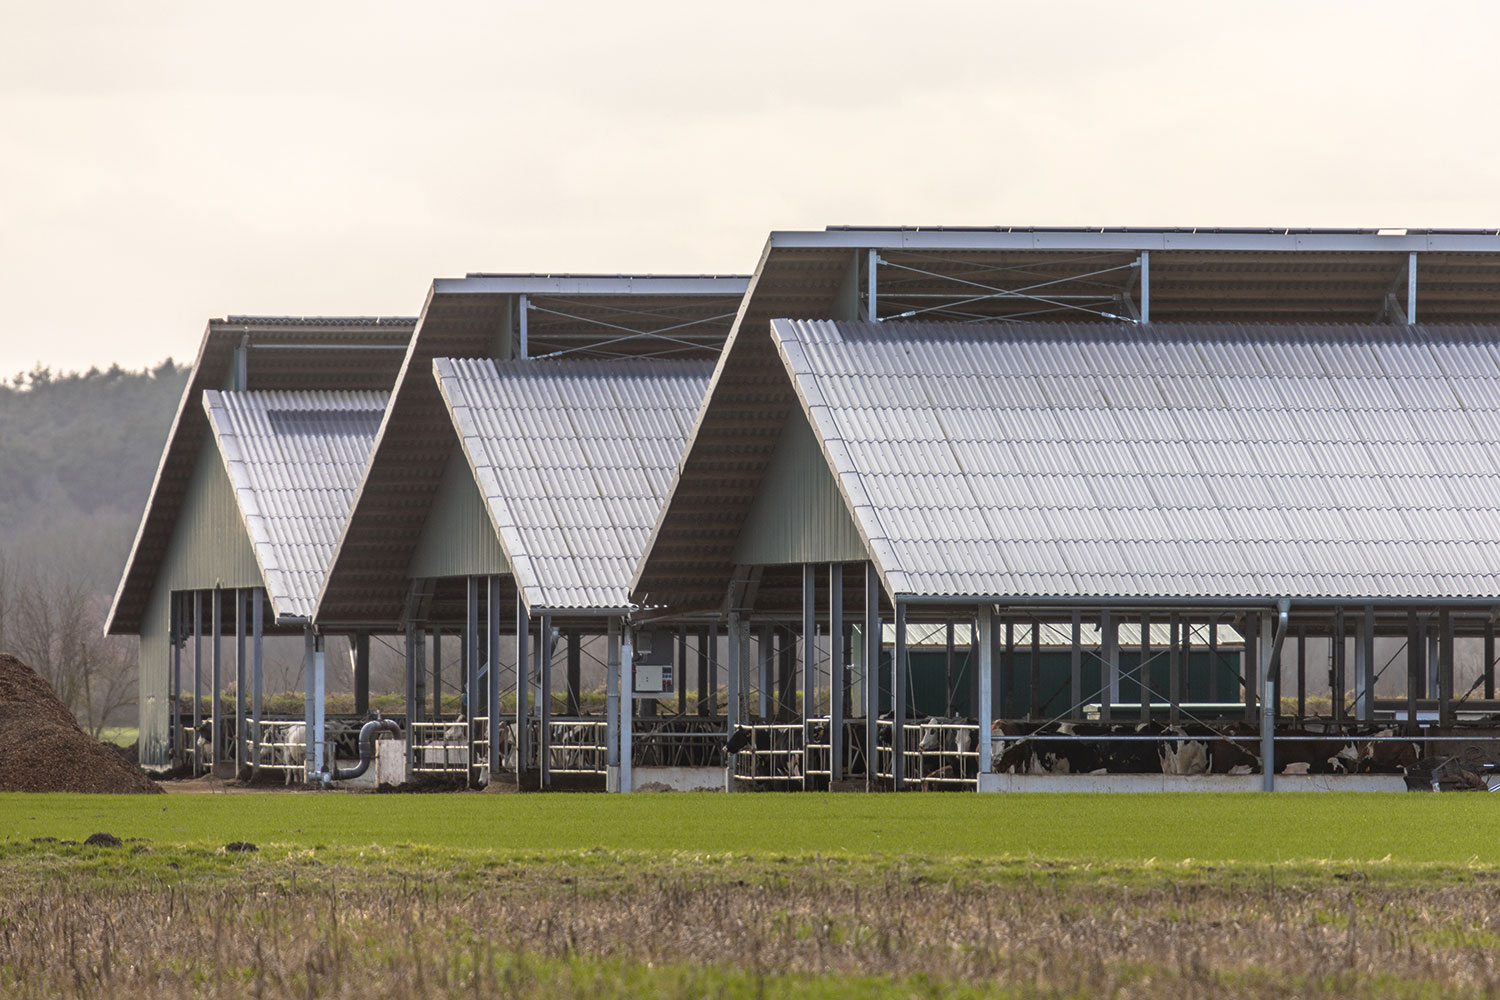 three-giant-barns-at-factory-farm-V7KFXDS.jpg